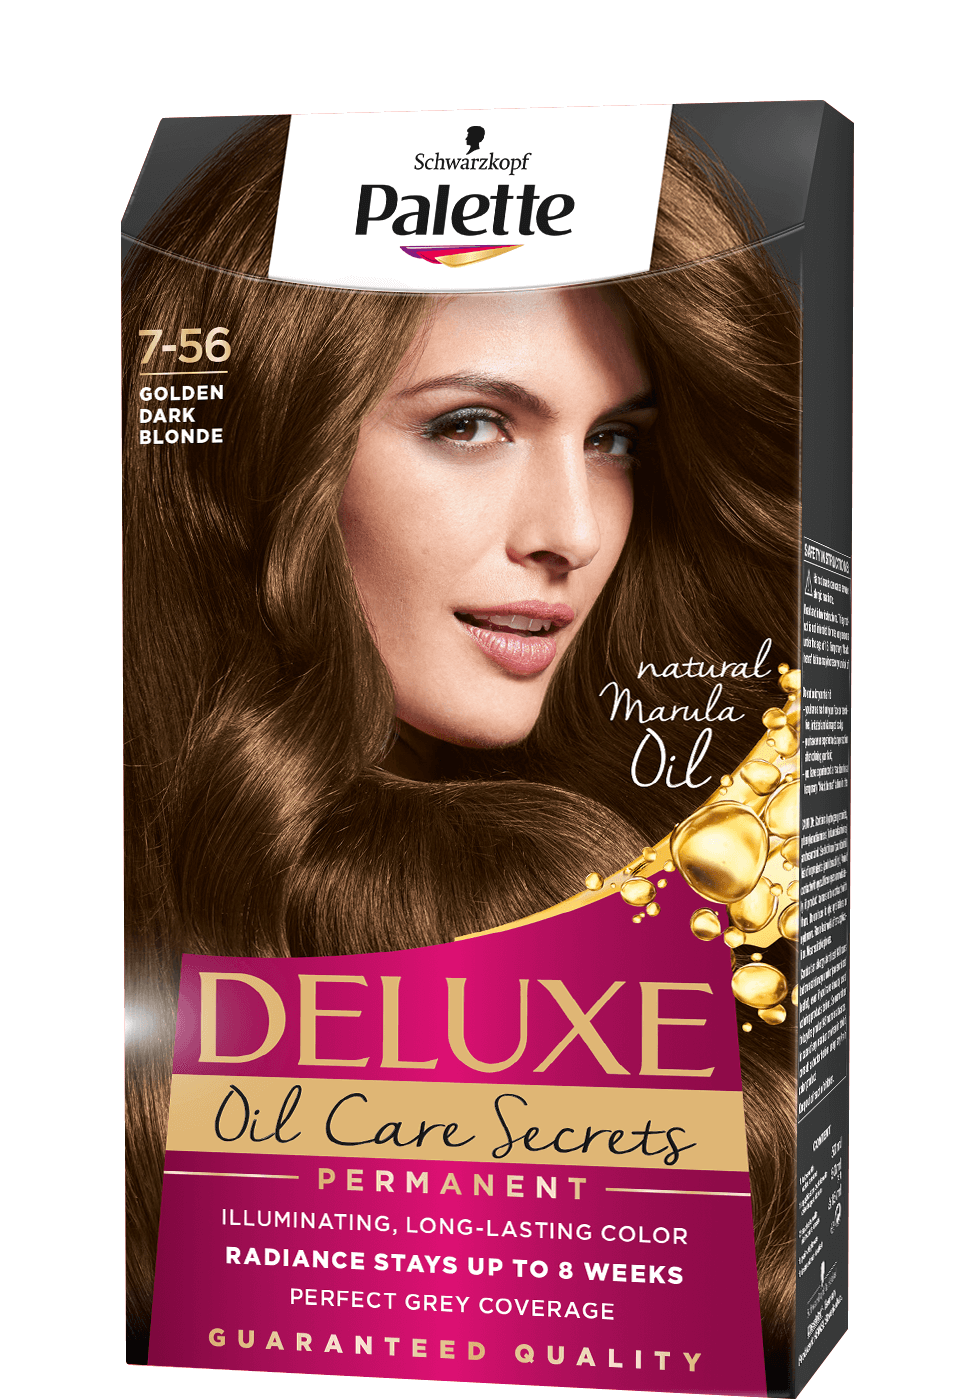 palette_com_oil_care_secrets_7_56_golden_dark_blonde_970x1400